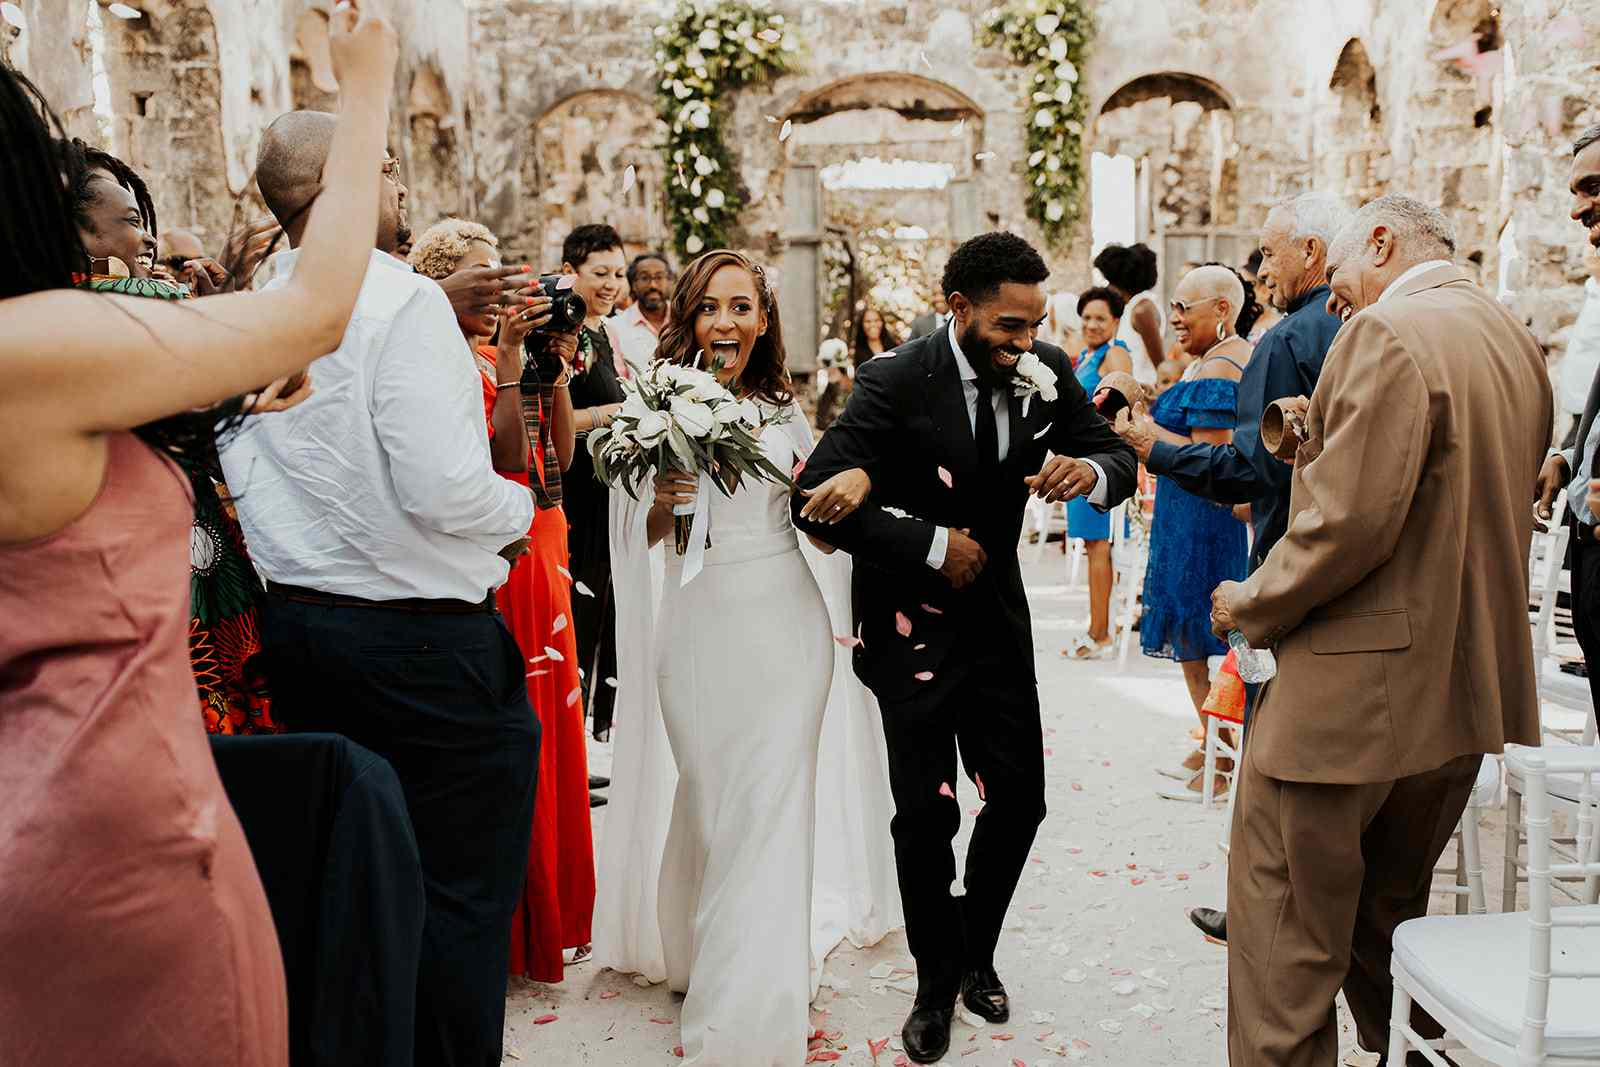 Bride and groom walking back up the aisle after ceremony